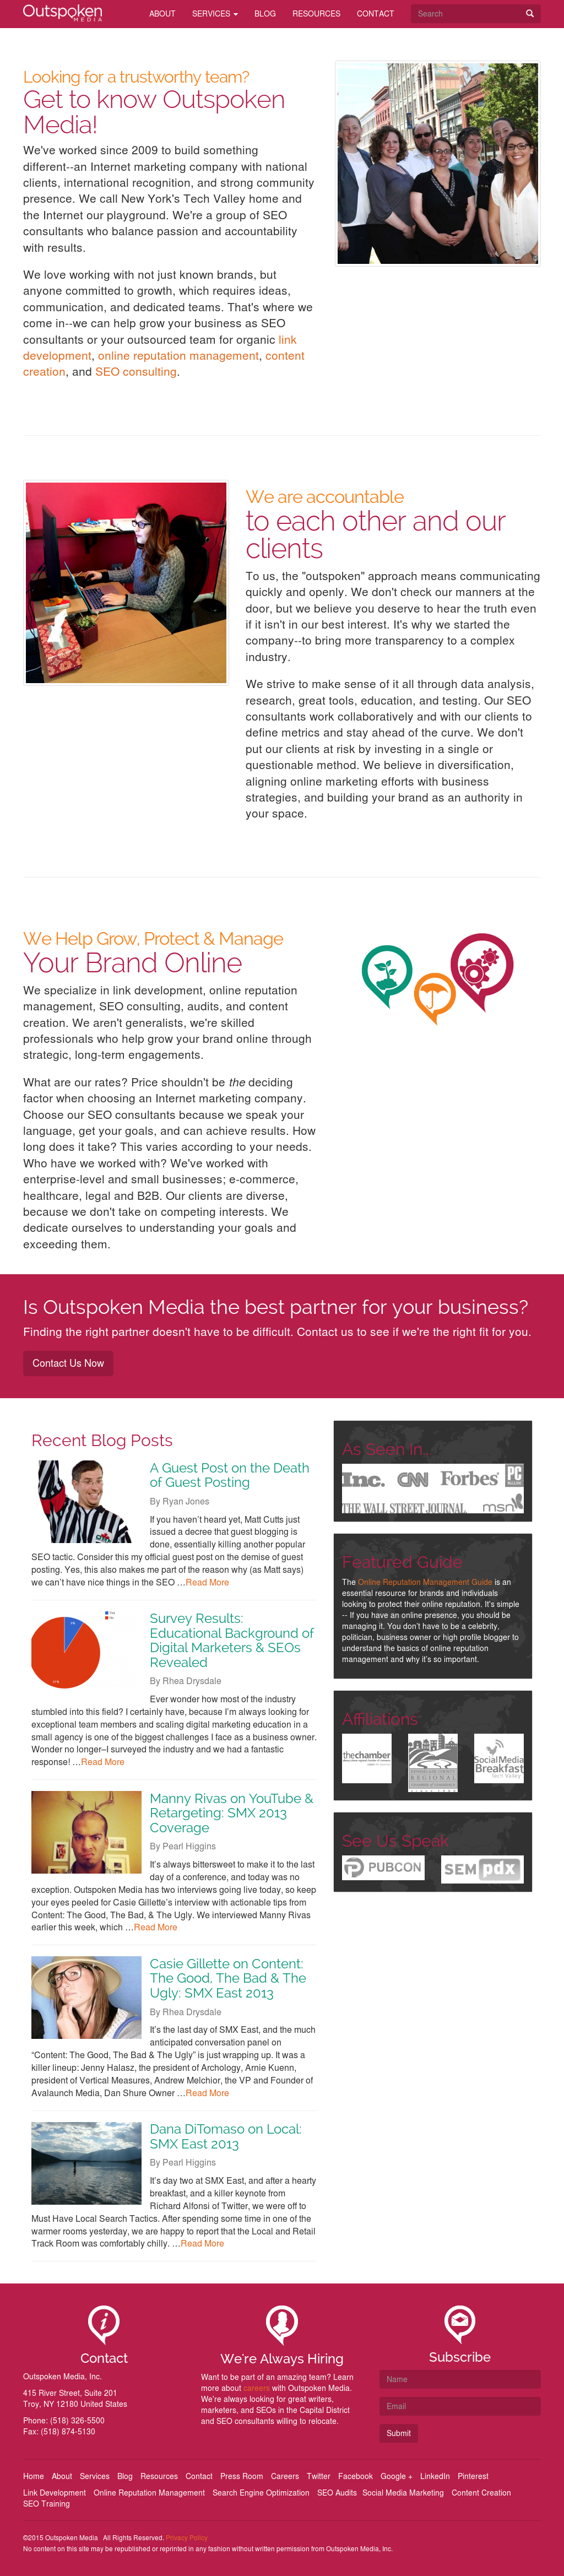 Outspoken Media Competitors, Revenue and Employees - Owler Company